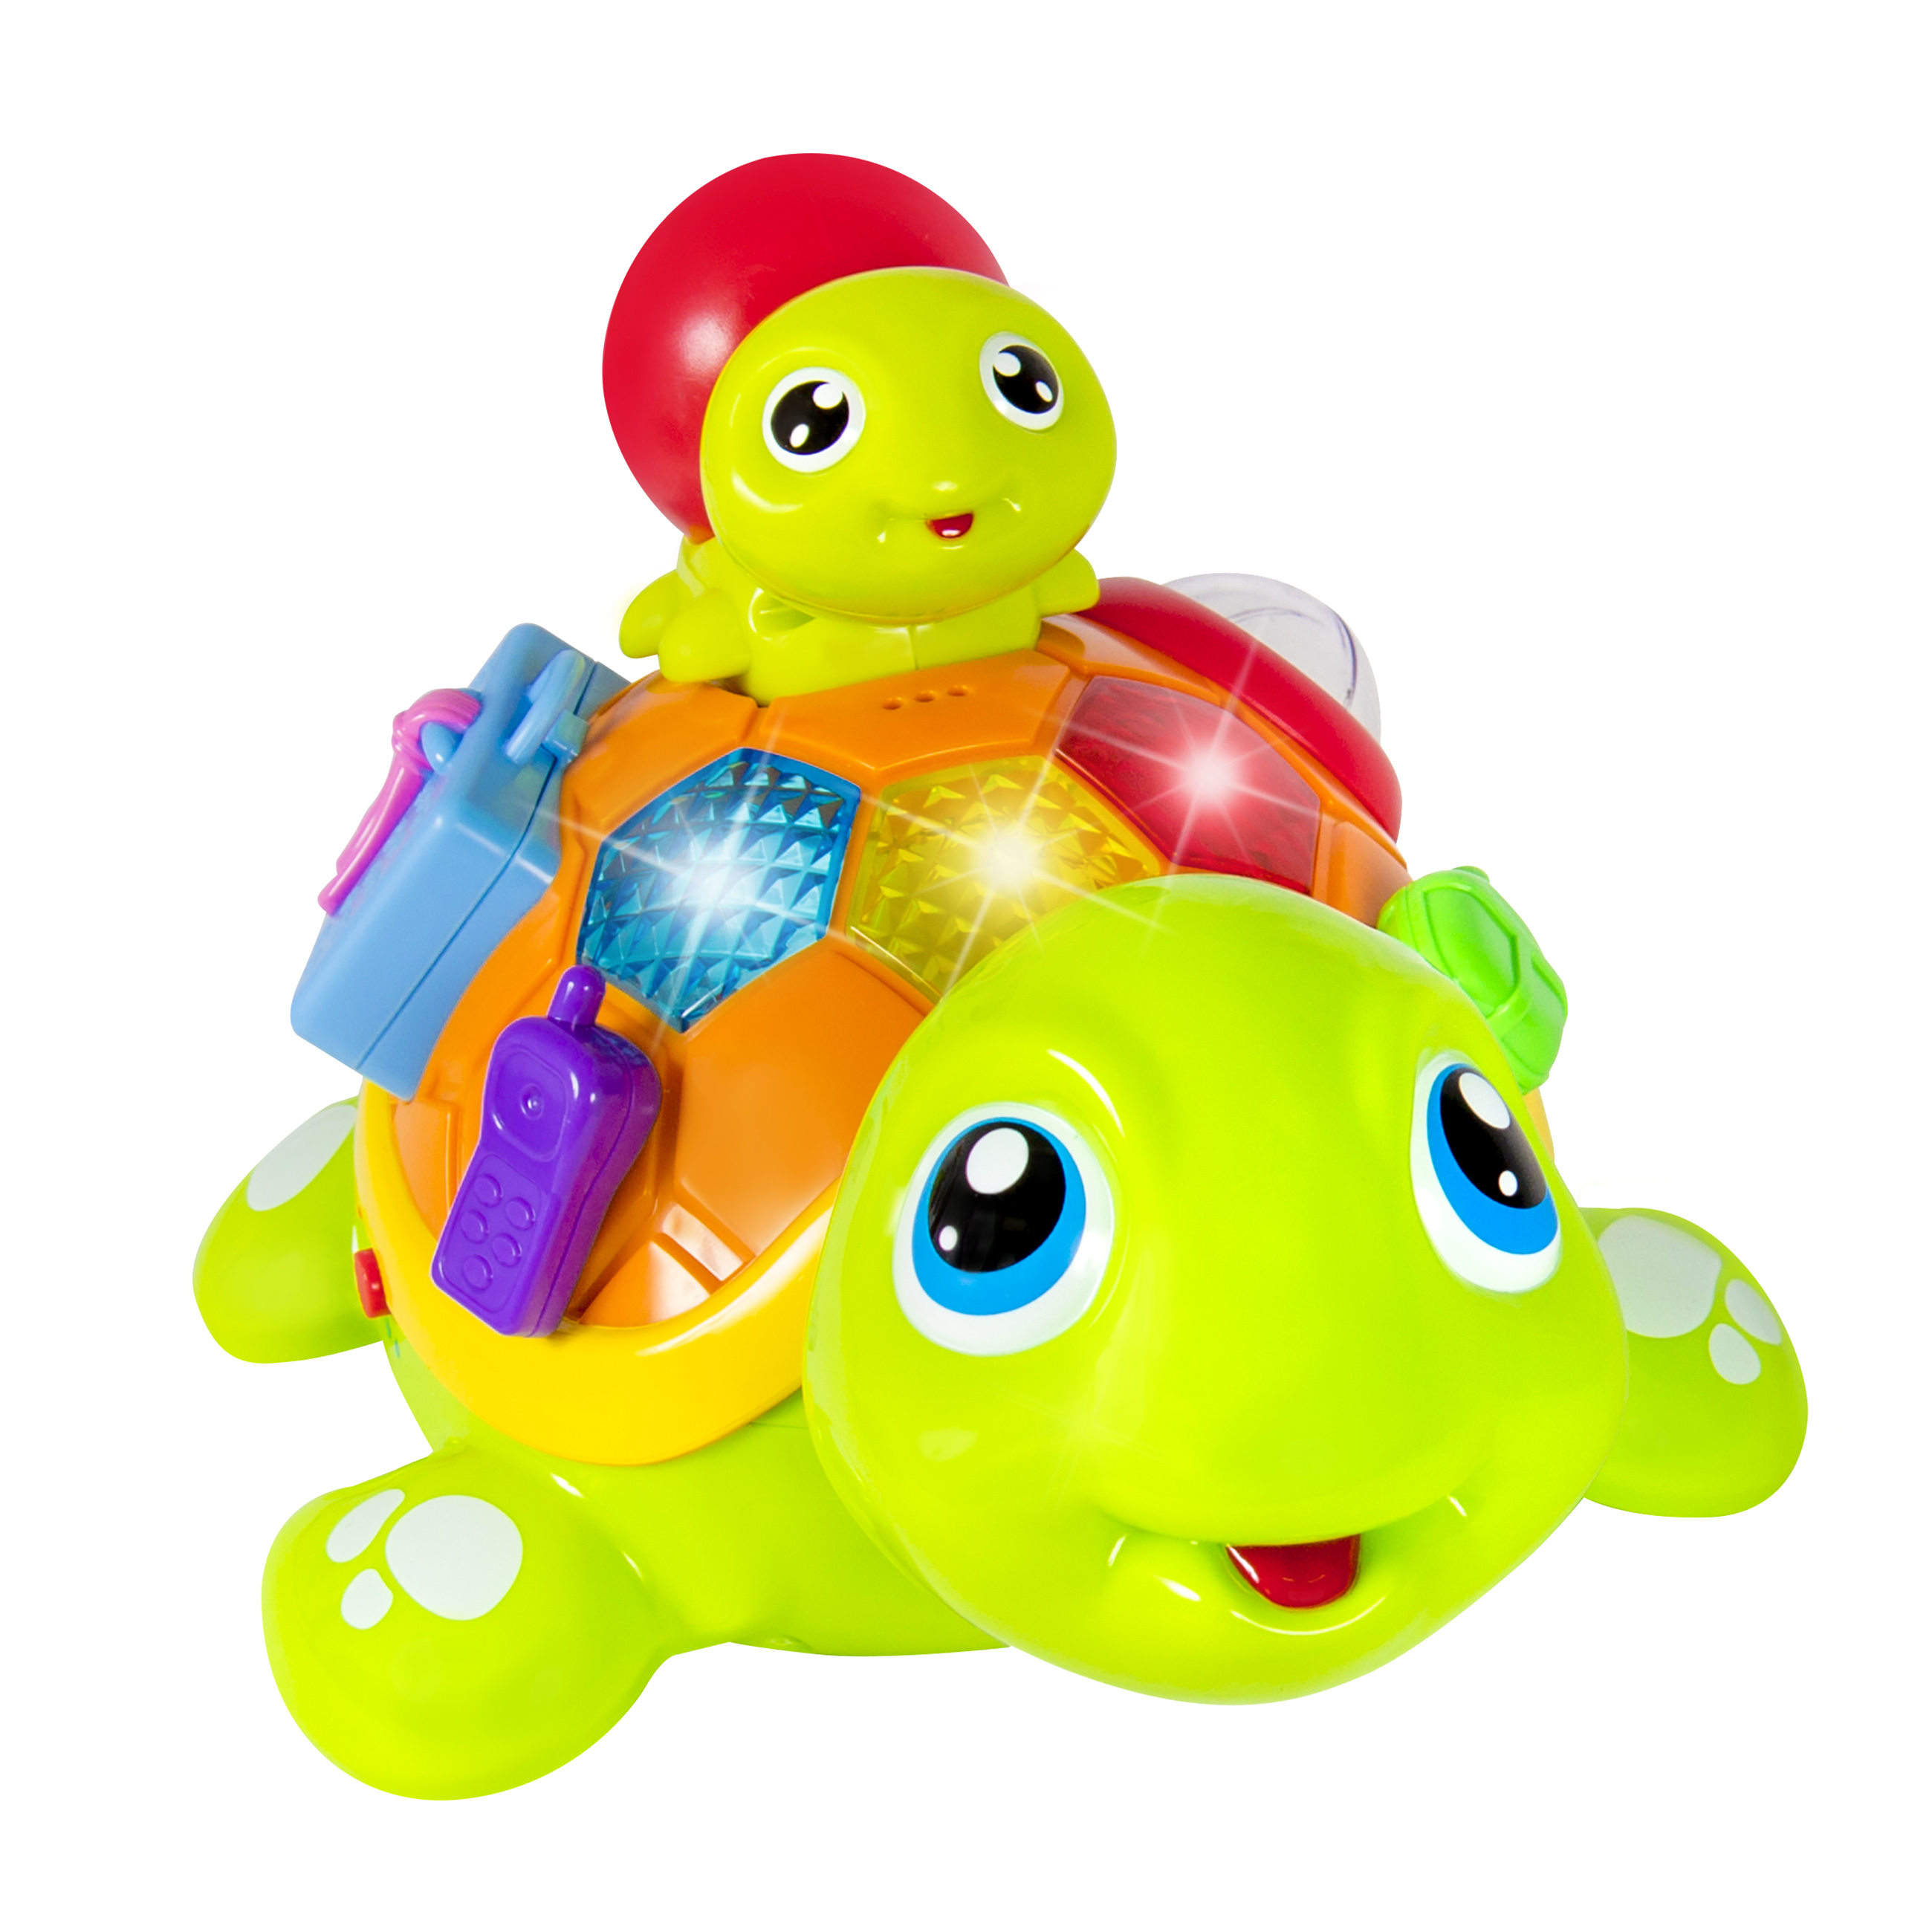 Educational Family Talking Turtle Toy Game Laugh & Learn Crawling Developmental